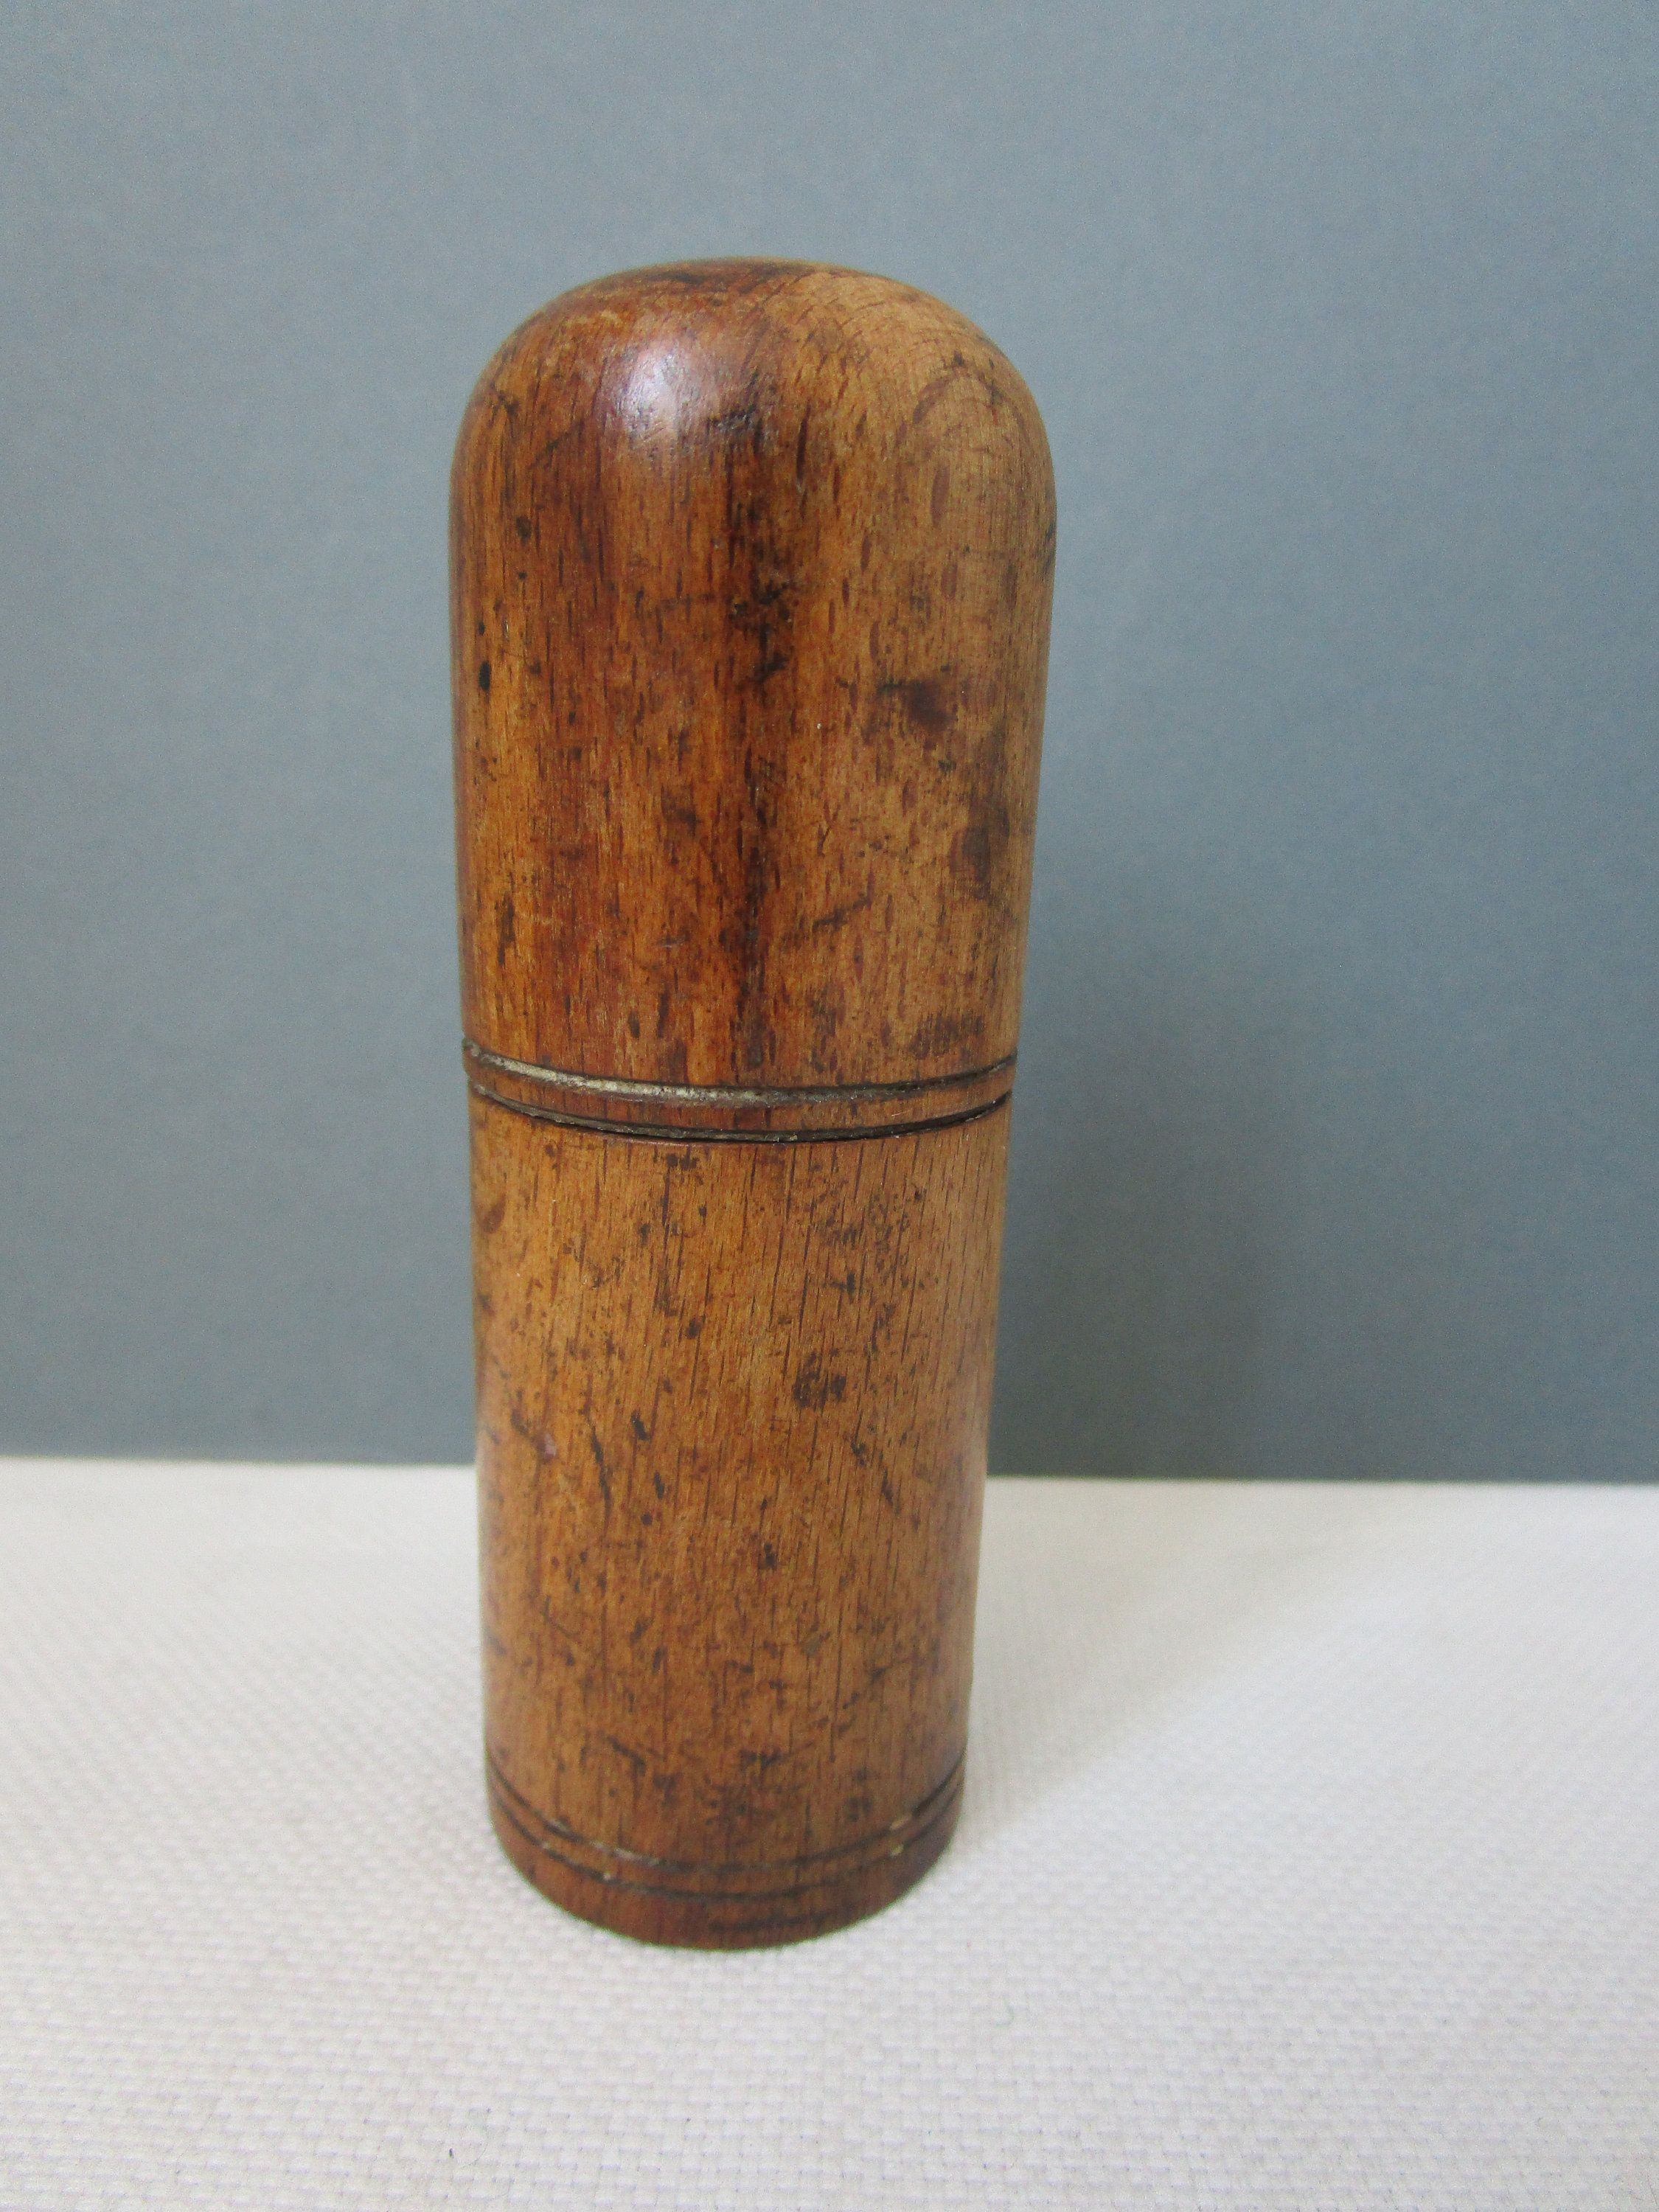 Antique treen container screw top turned wood cylindrical